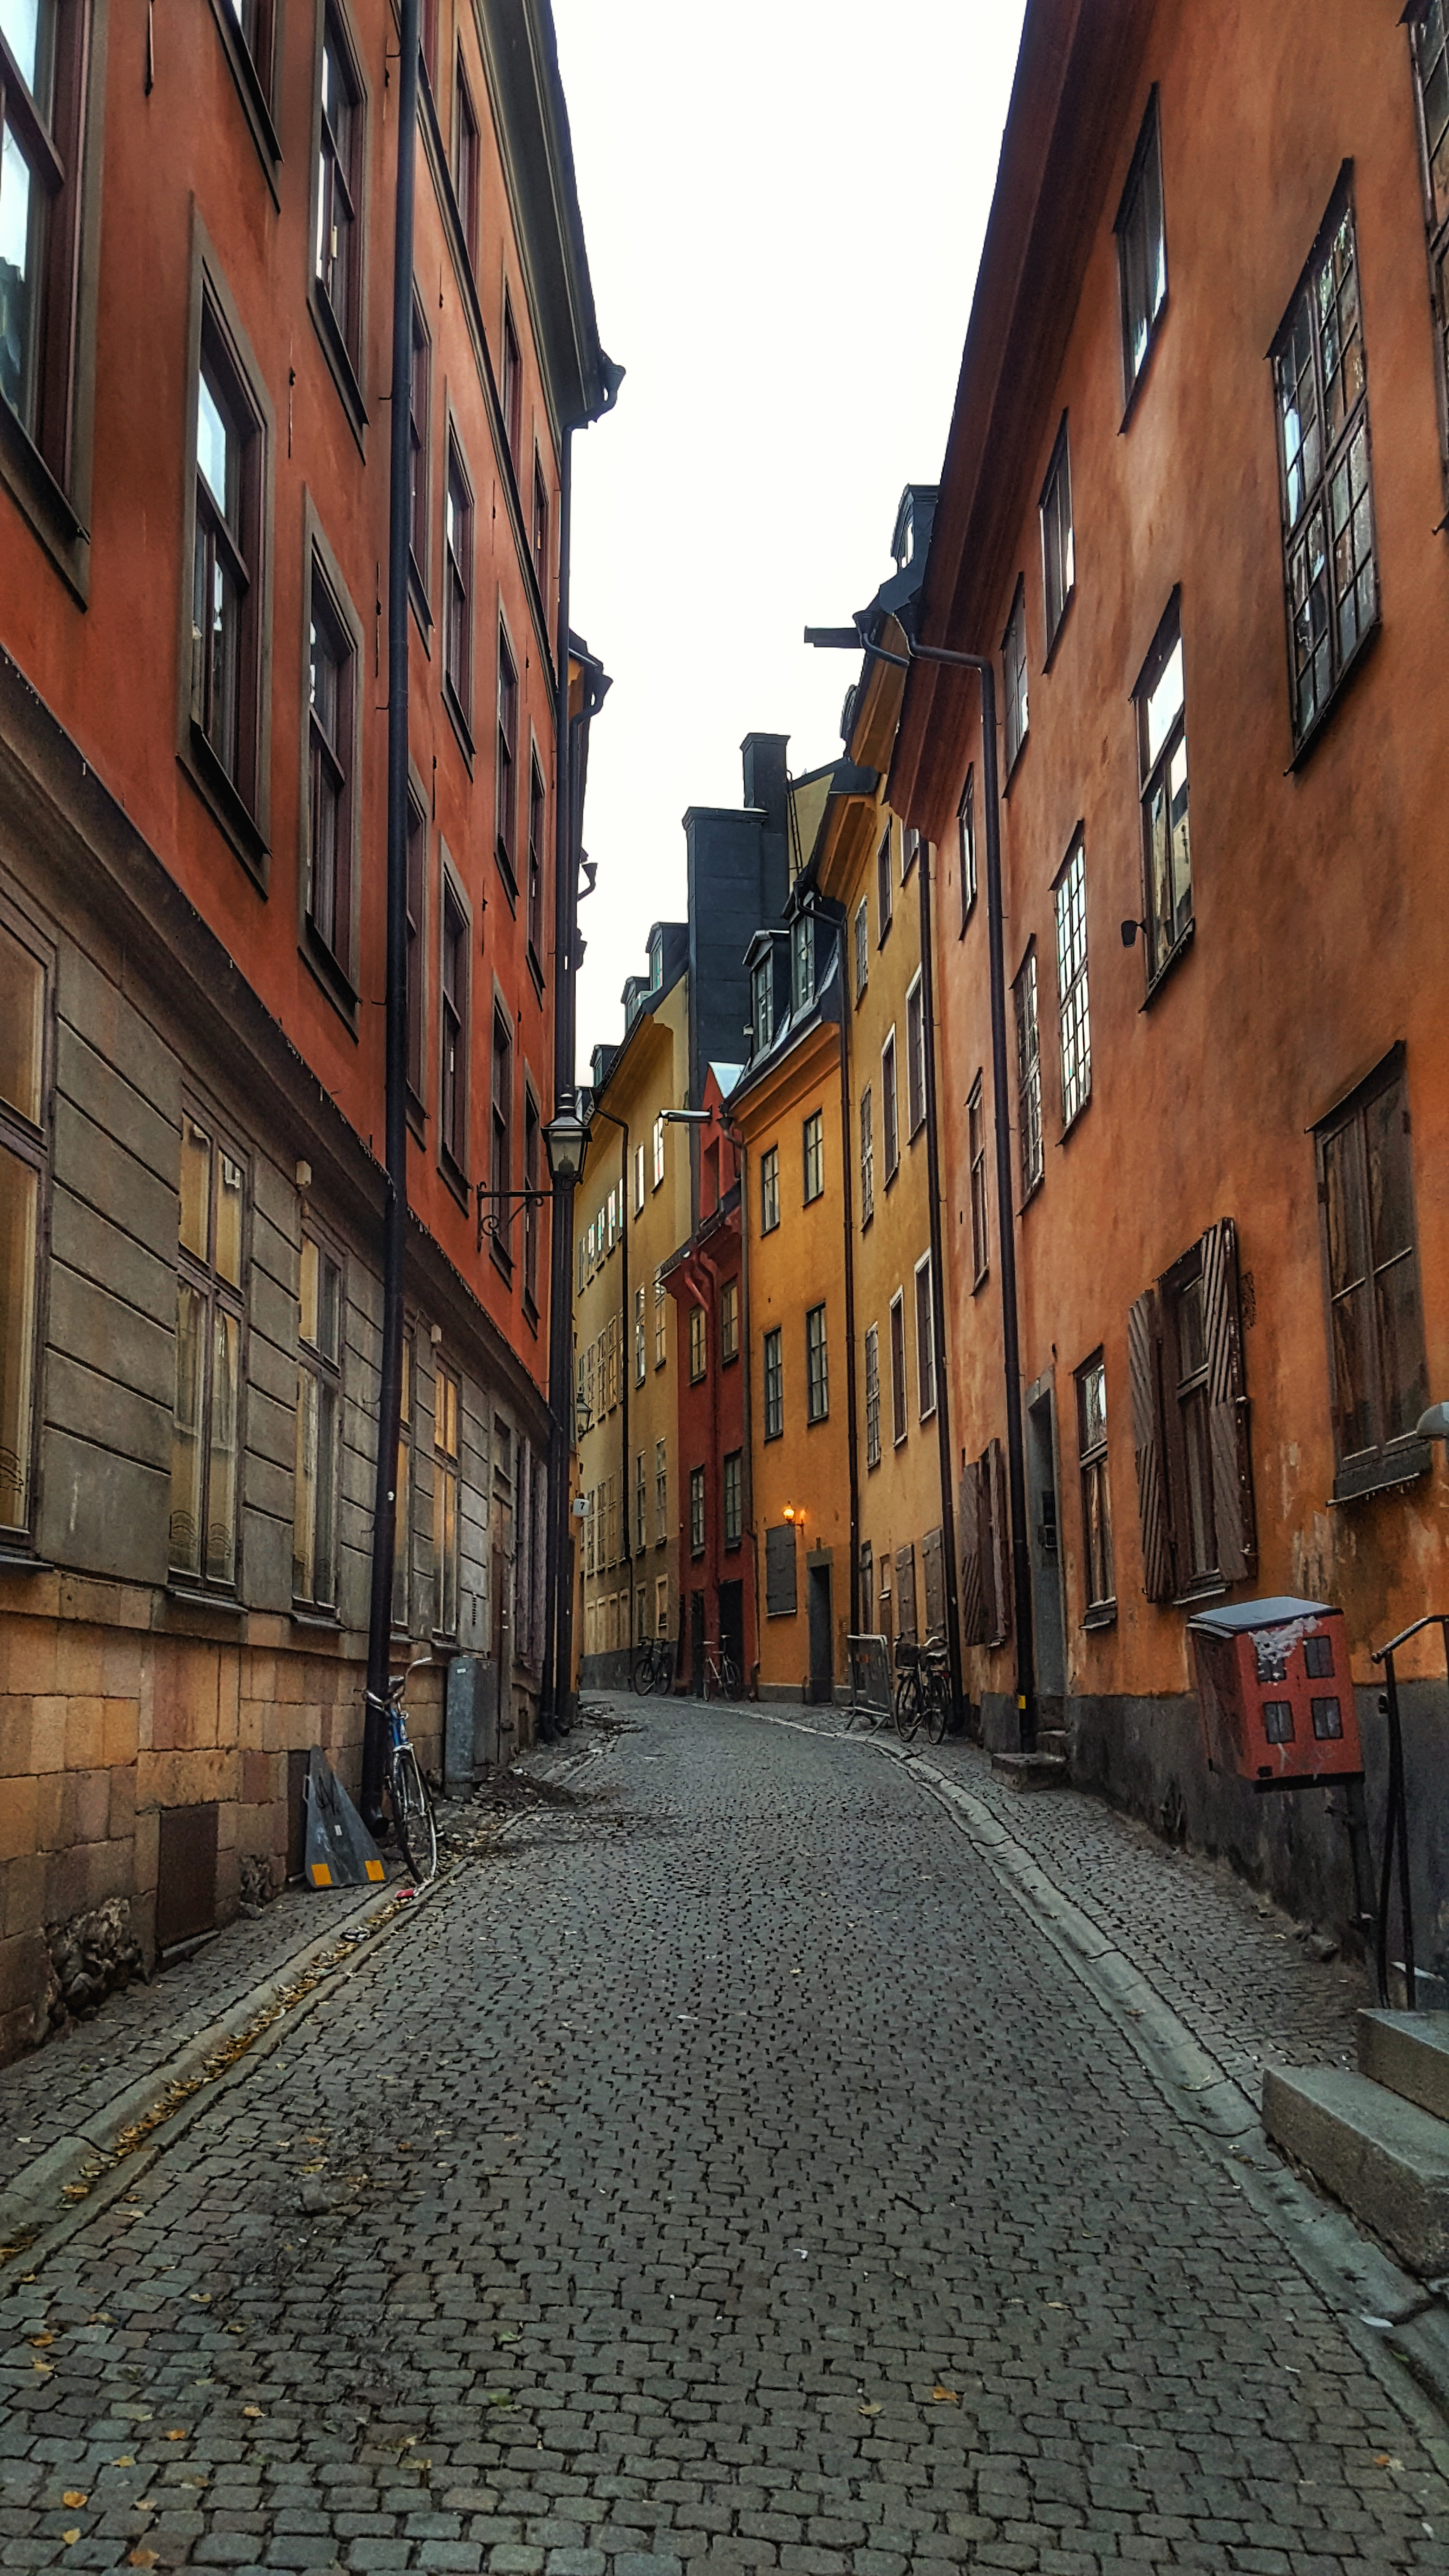 Street in Gamla Stan (Old Town), Stockholm